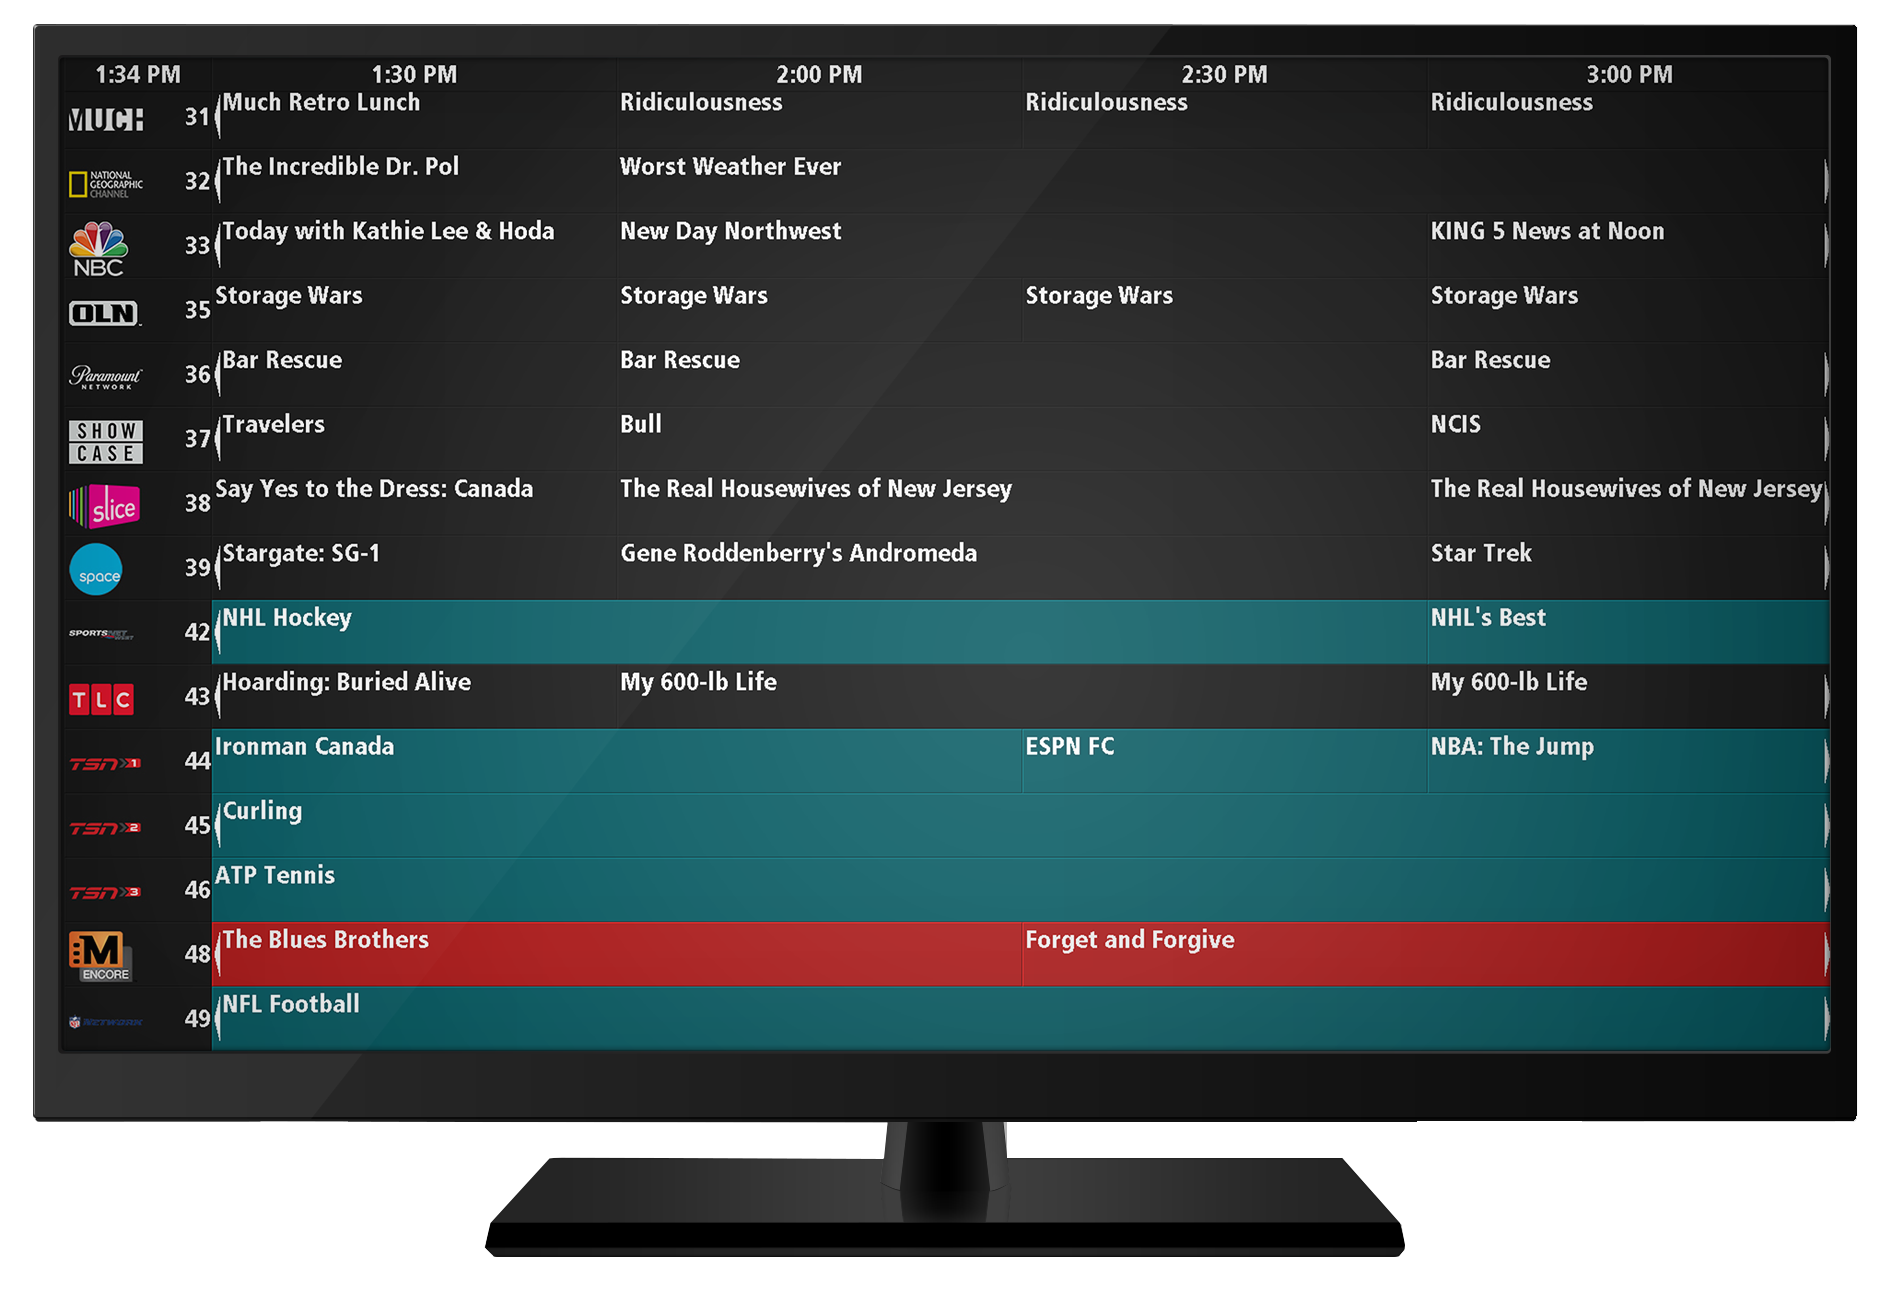 LineUp: A Scrolling TV Listings Guide – Display Systems International